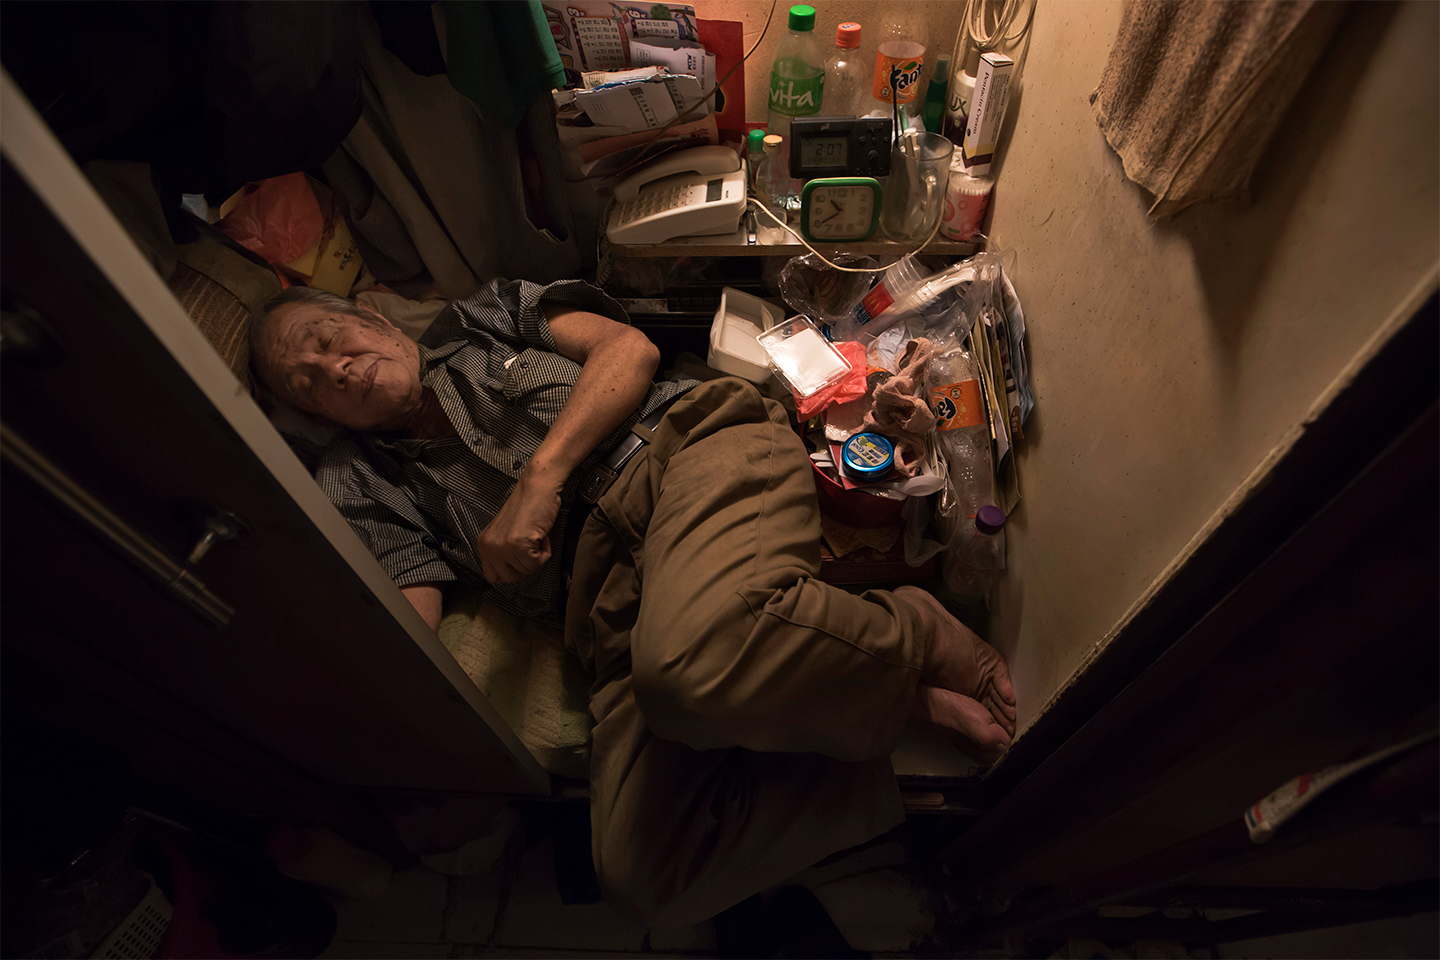 Exploring The Tiny Coffin Homes Of Hong Kong - 10 shocking photos inside hong kongs coffin cubicles